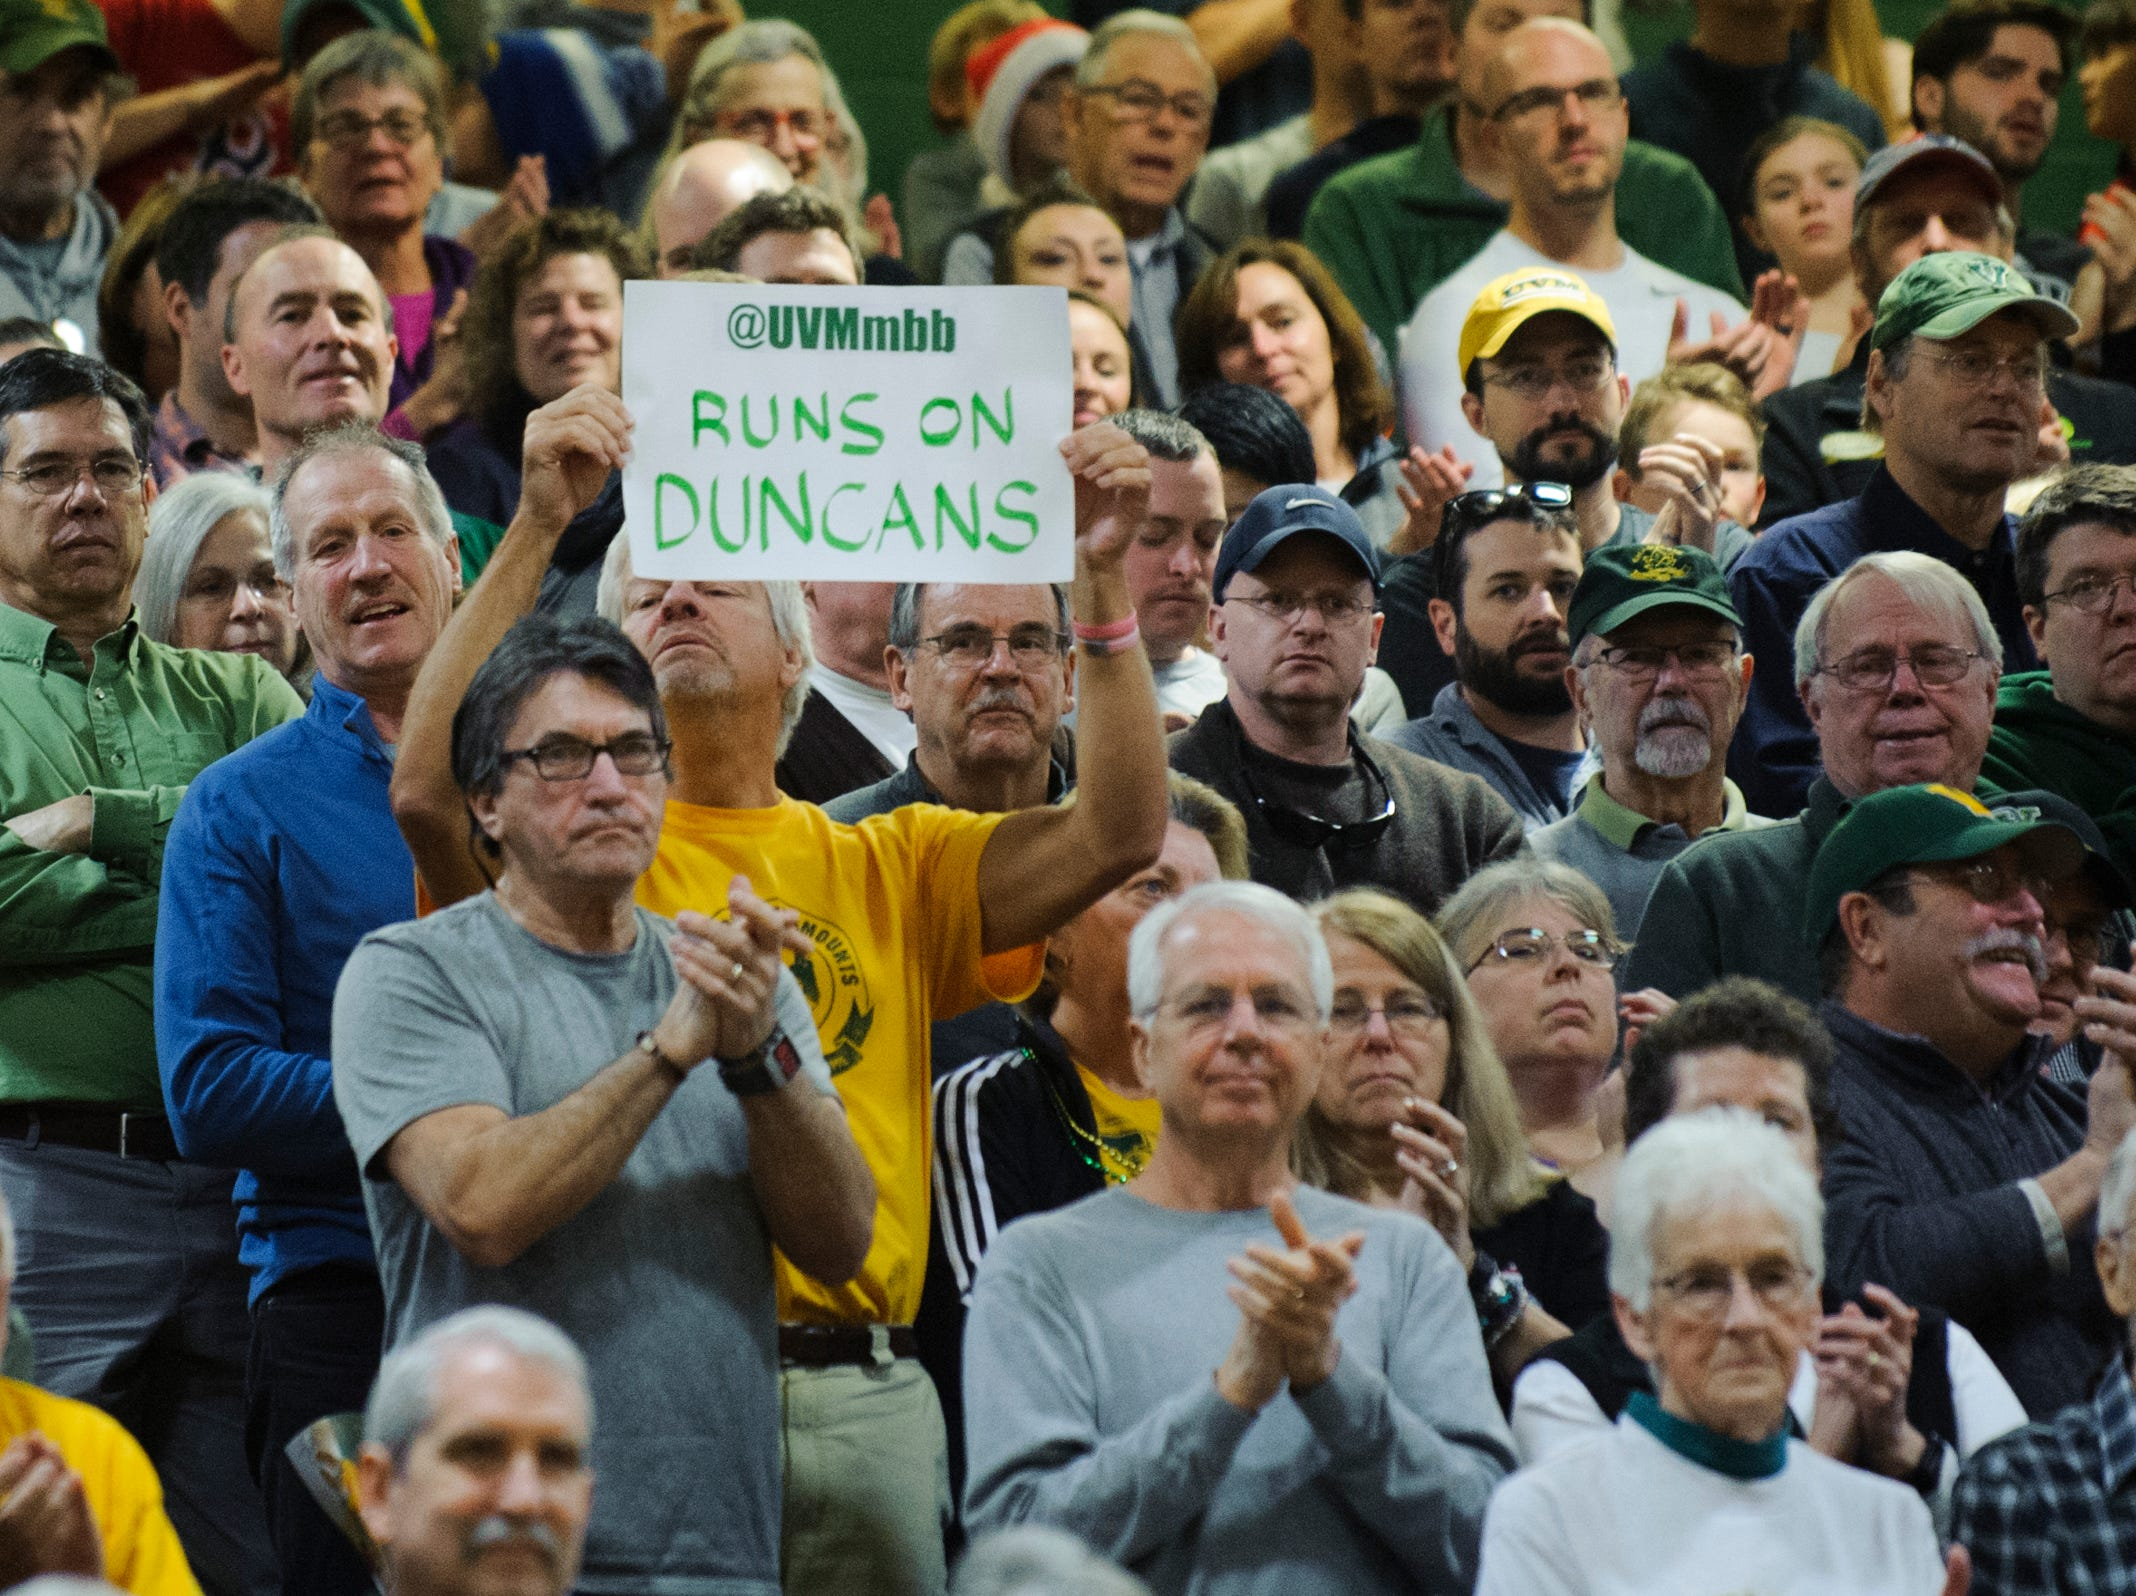 A Vermont fan holds p a sign for the Duncan brothers during the men's basketball game between the Northeastern Huskies and the Vermont Catamounts at Patrick Gym on Sunday afternoon December 16, 2018 in Burlington.